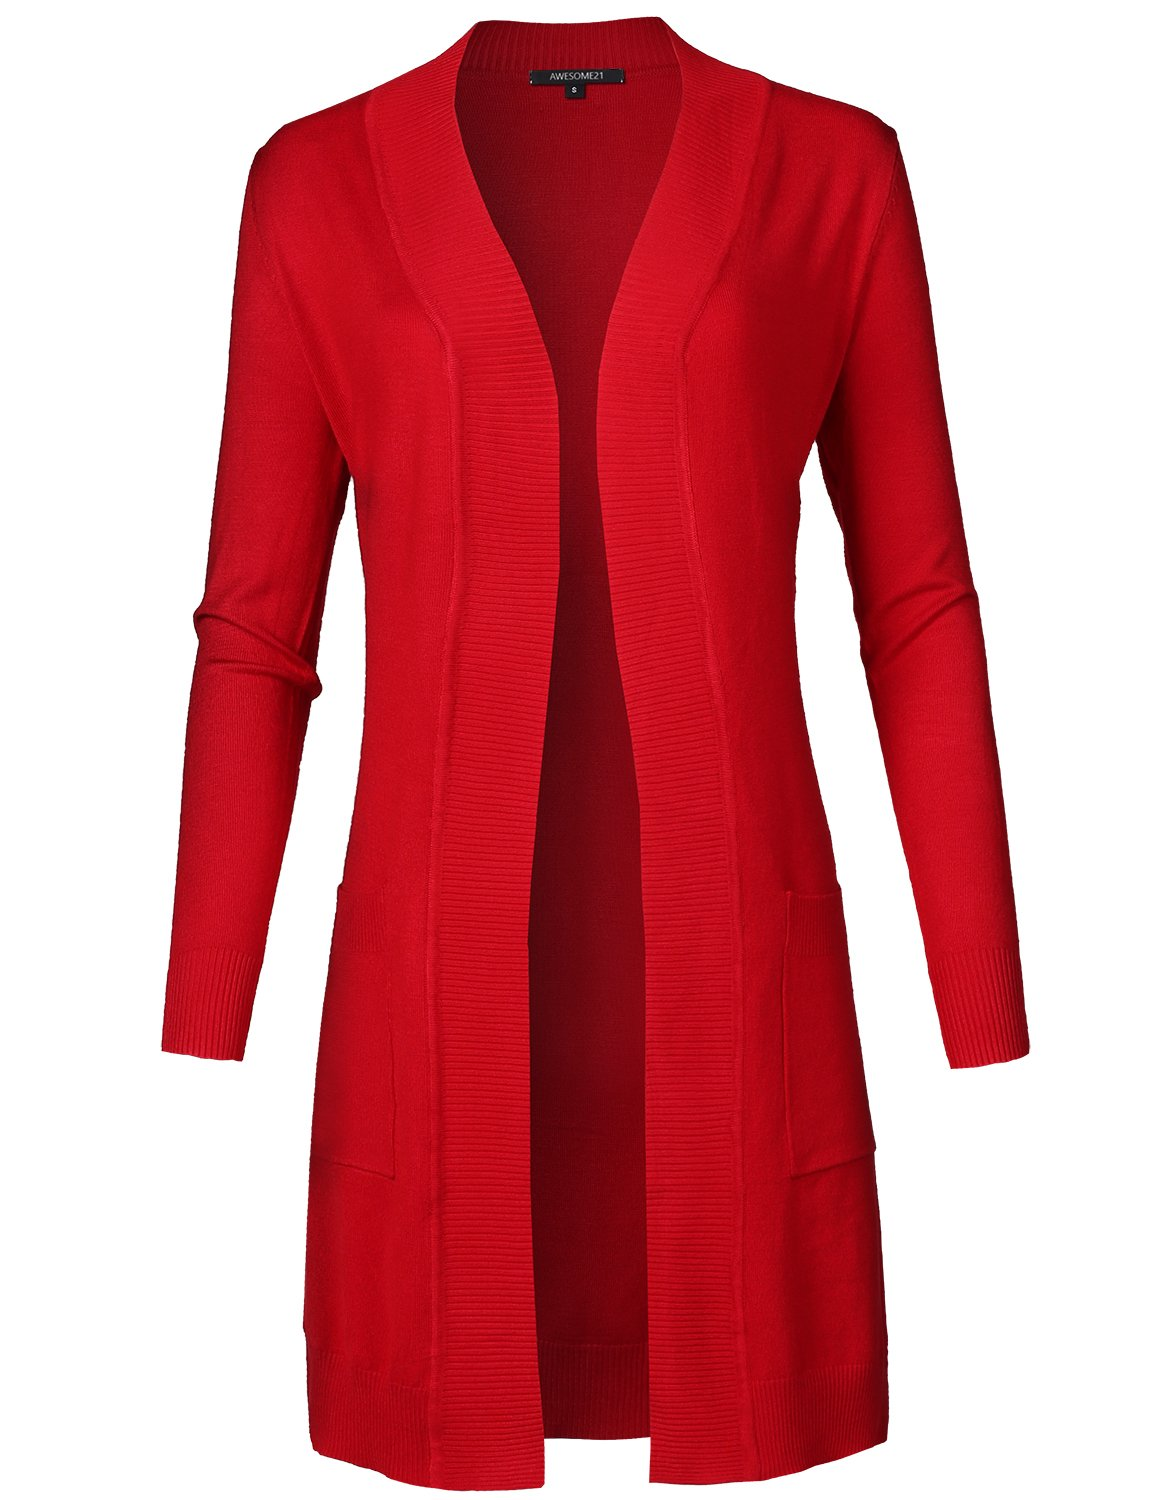 Awesome21 Solid Soft Stretch Longline Long Sleeve Open Front Knit Cardigan Red Size S